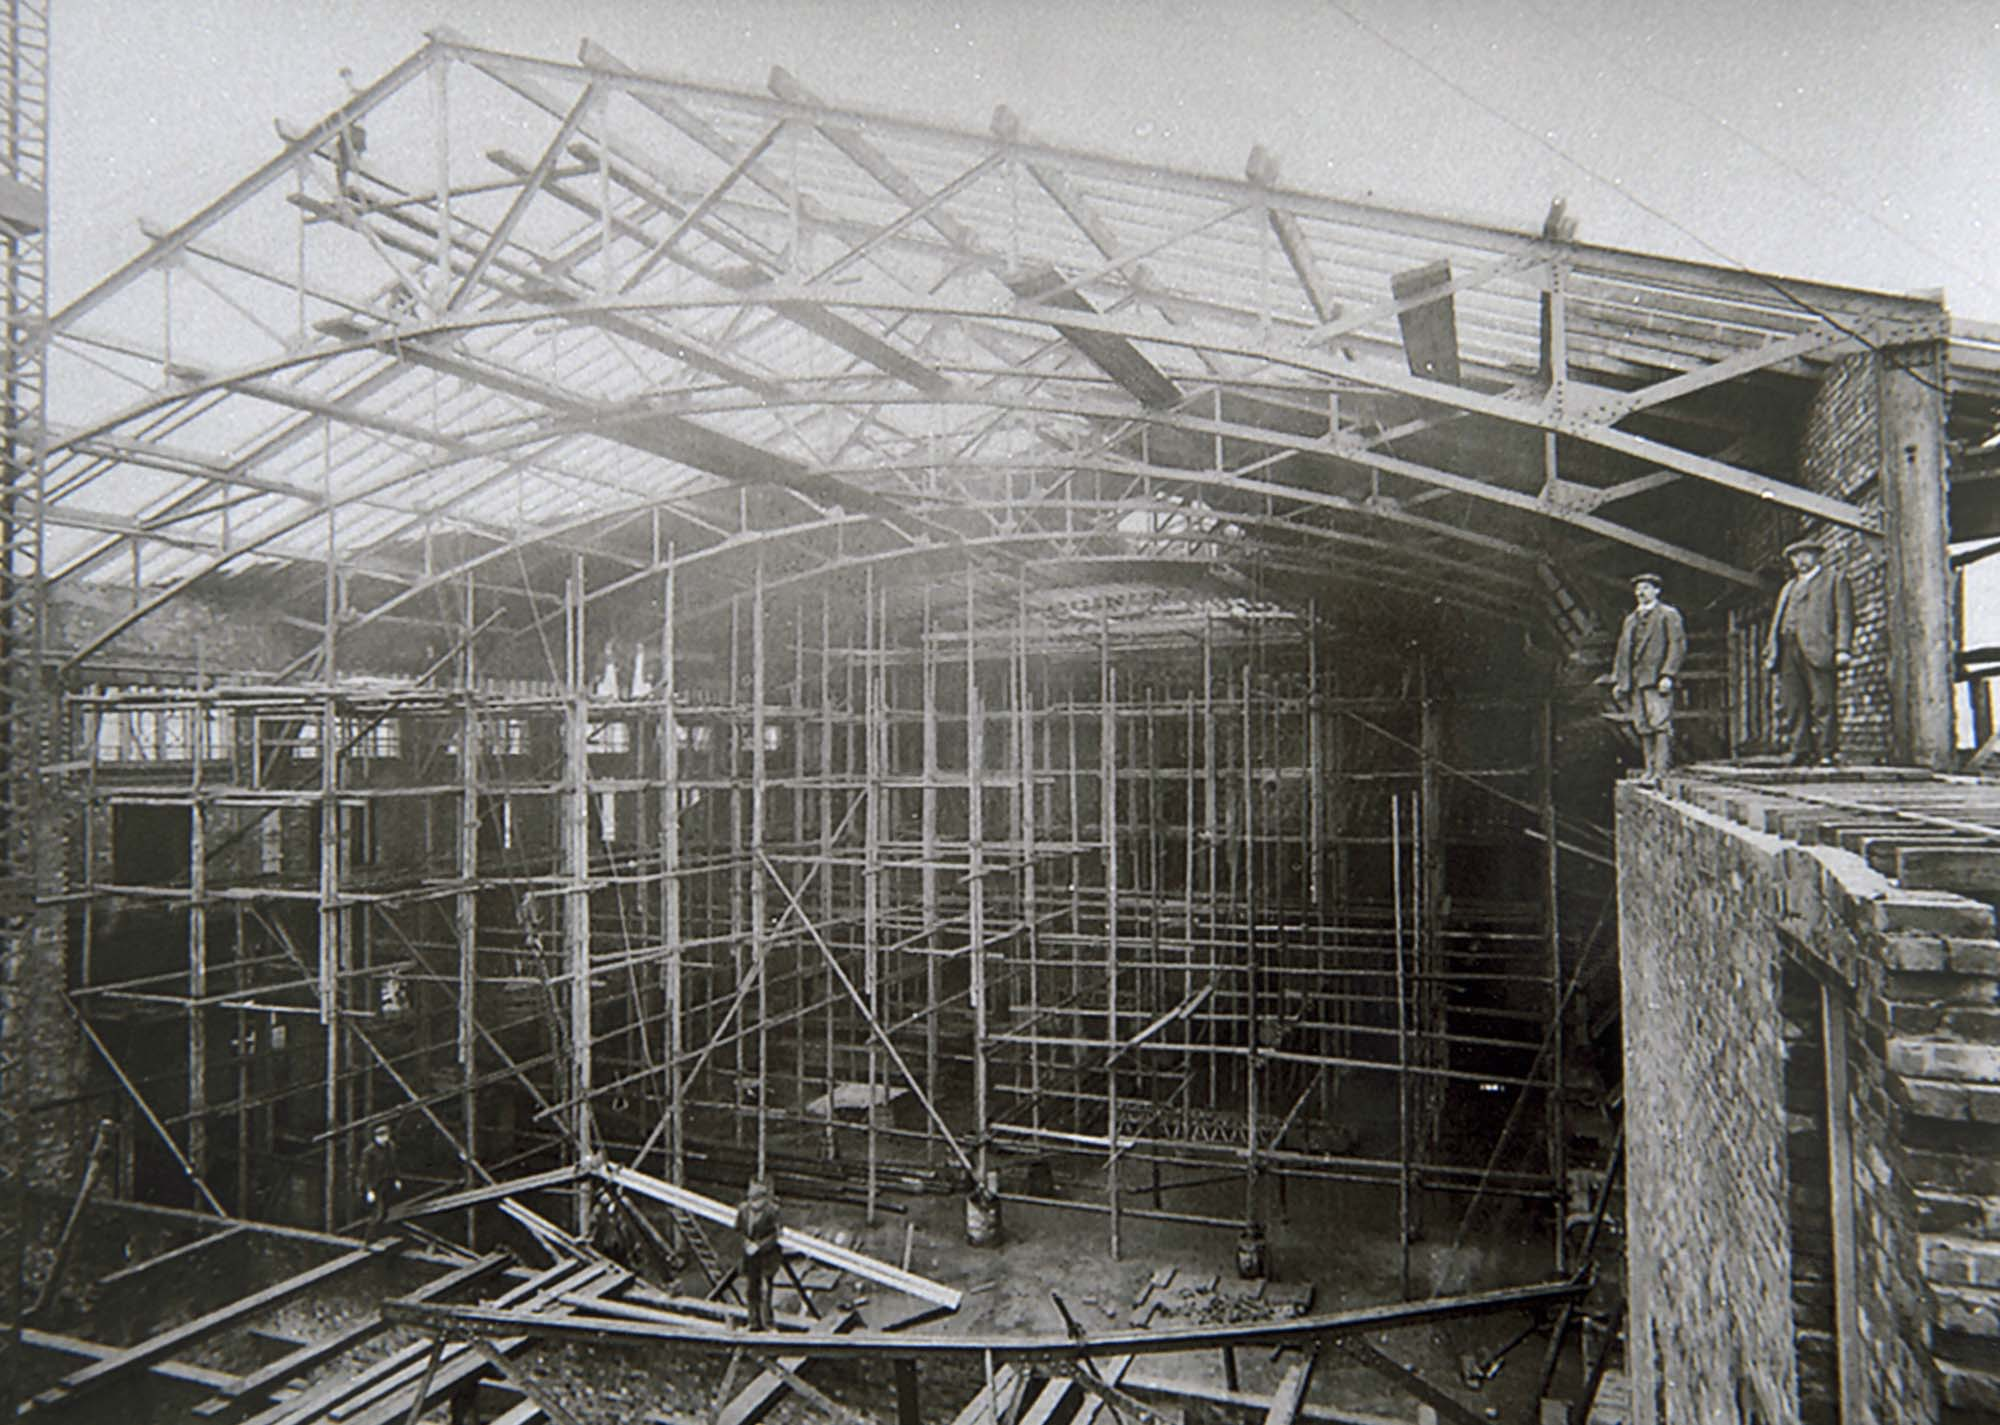 The Hall during construction during 1912 - Leicestershire Record Office